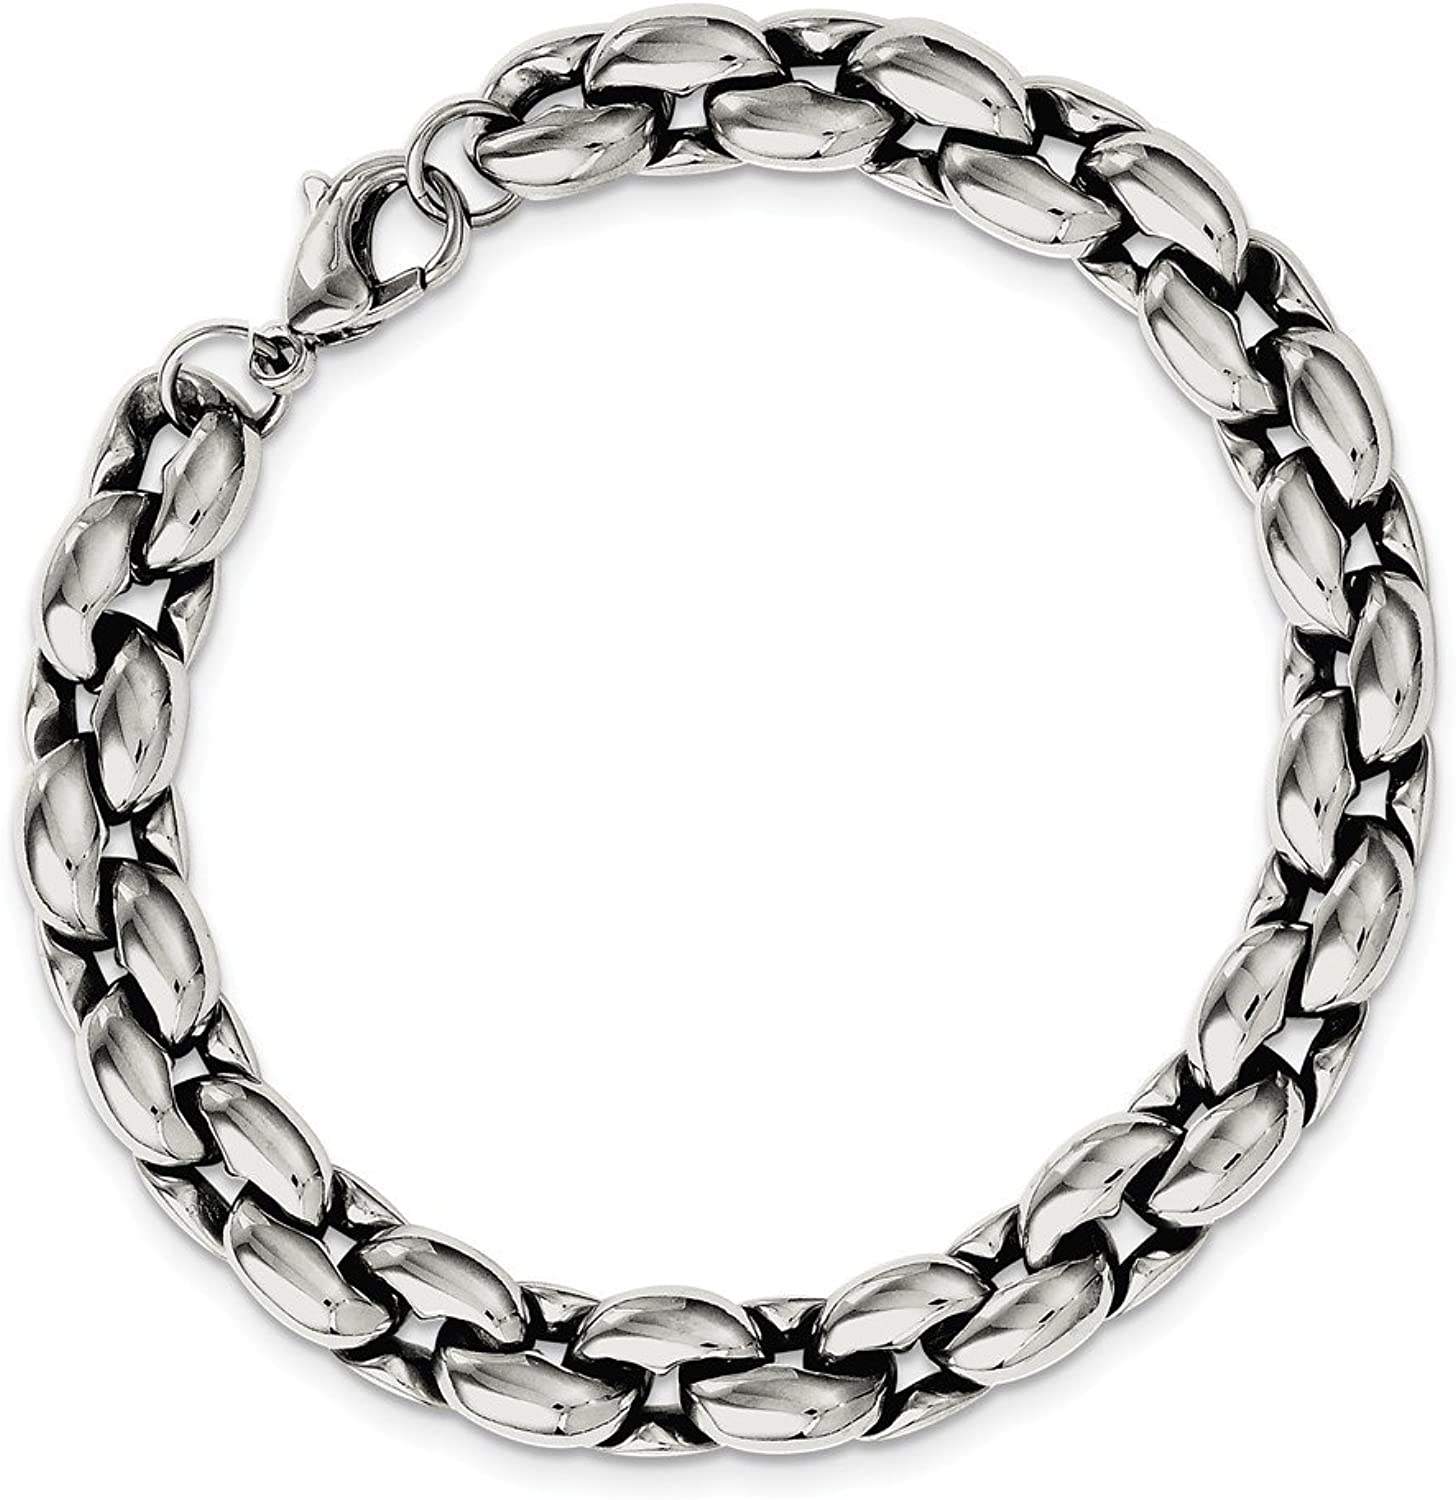 Beautiful Stainless Steel Polished Ovals 8.25in Bracelet